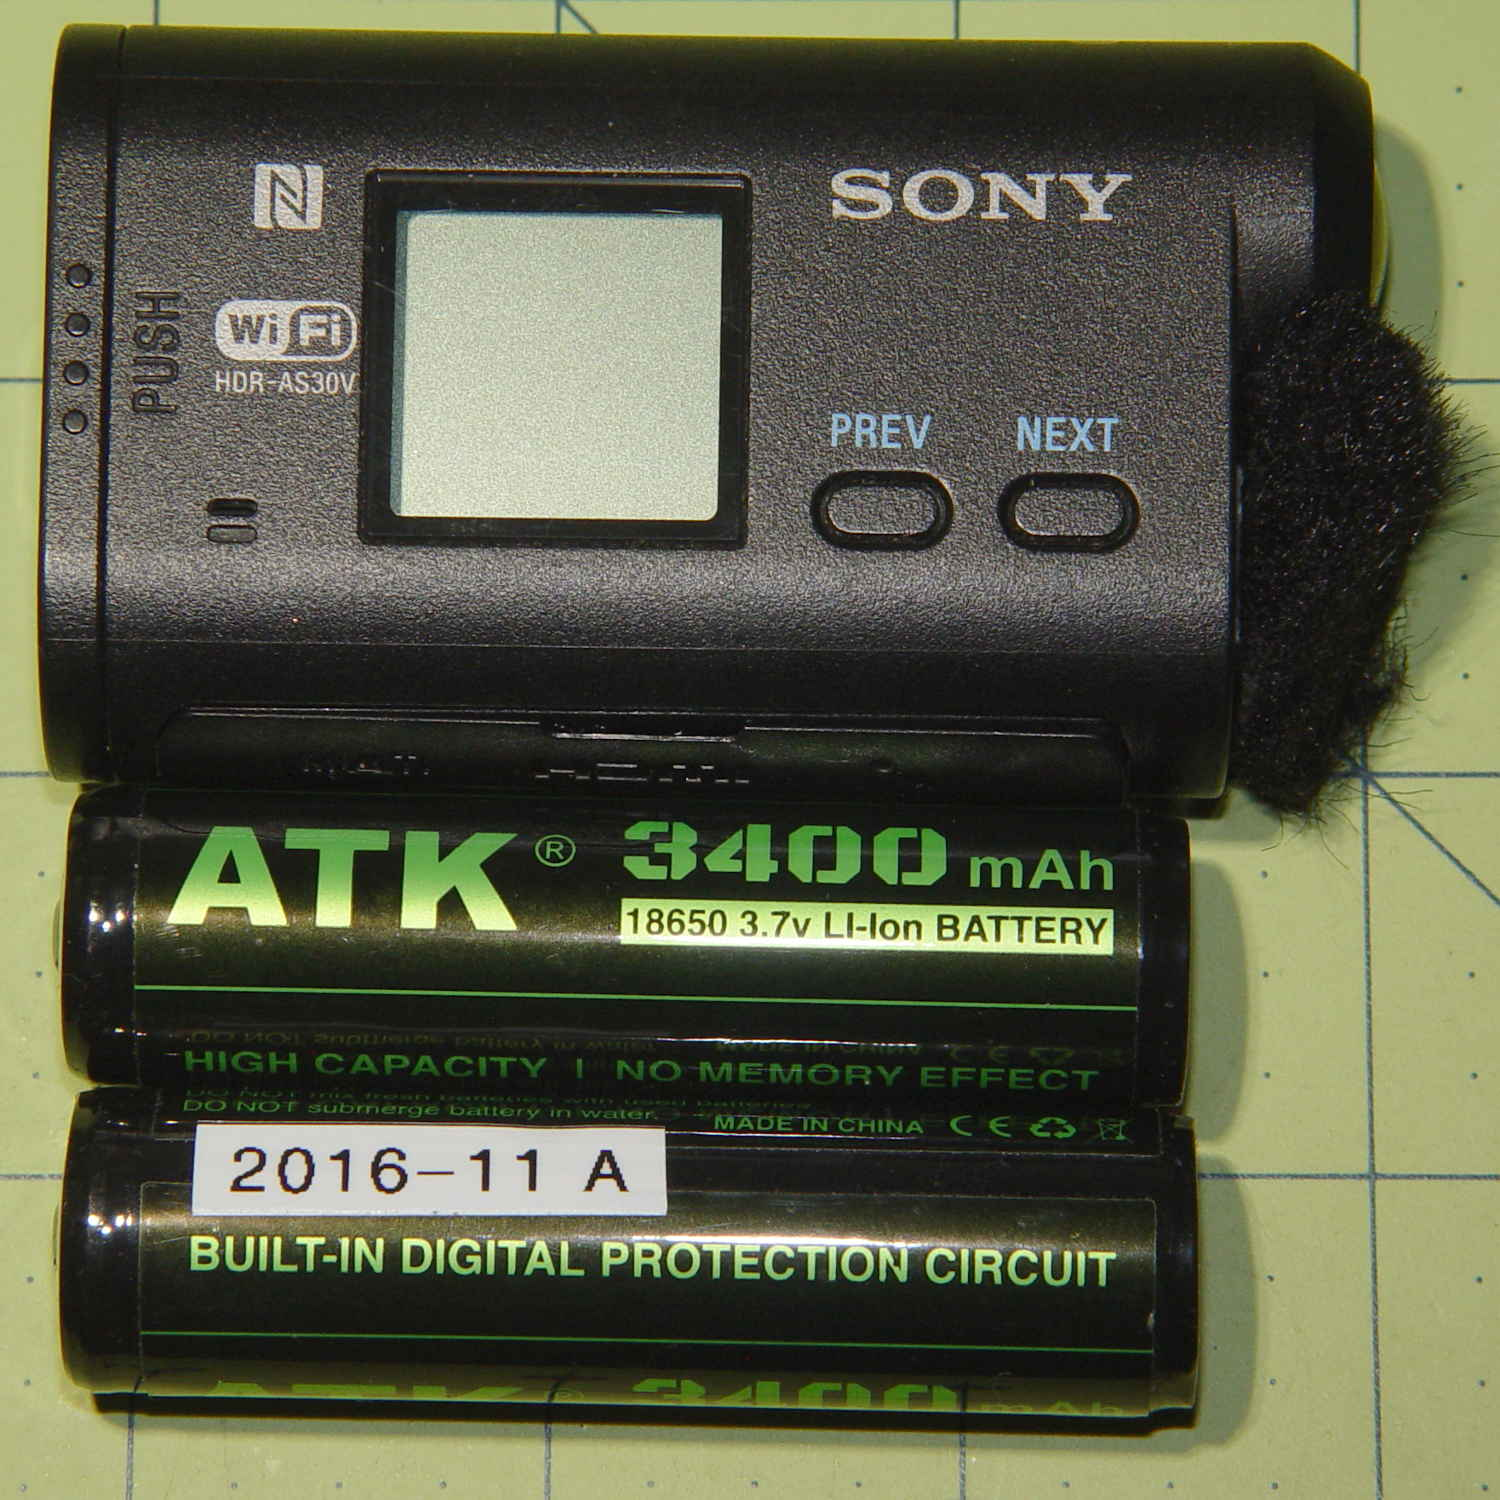 Sony Hdr As30v Vs Lithium Ion 18650 Cells The Smell Of Molten Protection Circuit Images Battery Side View